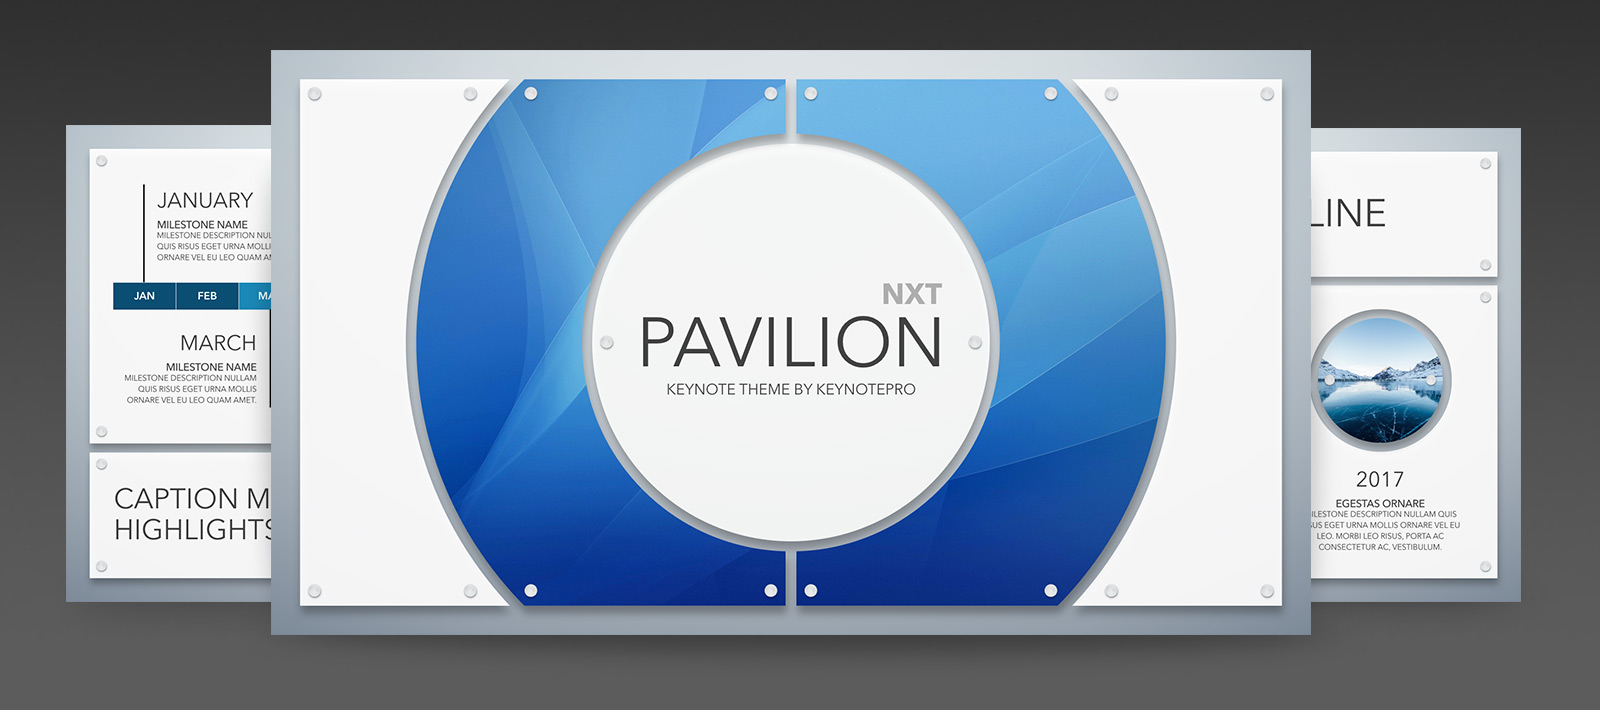 Pavilion NXT for Keynote